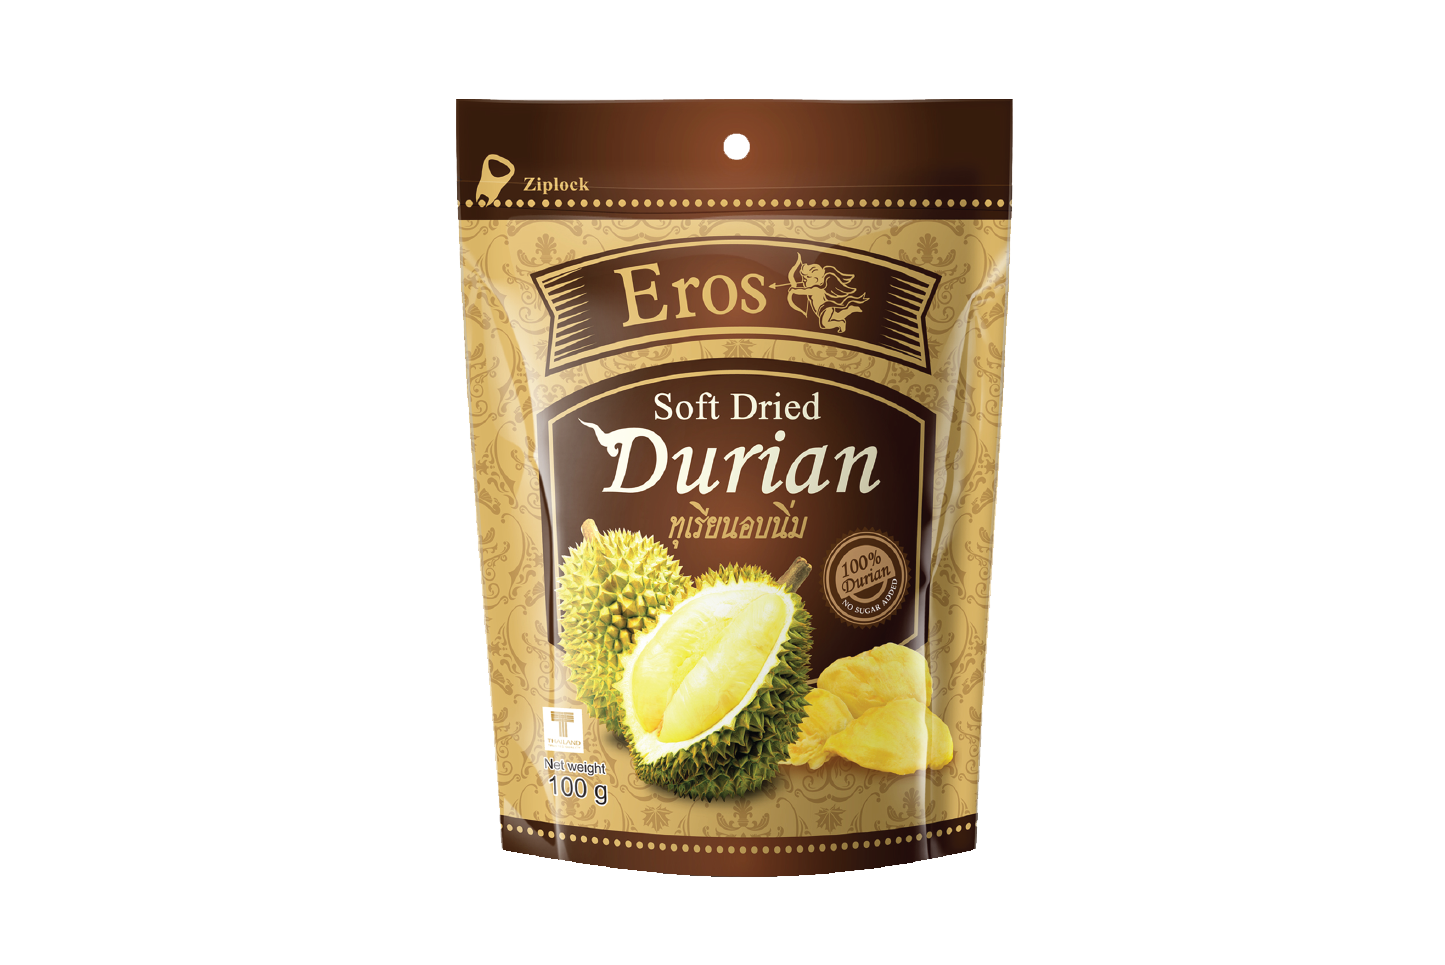 EROS Soft Dried Durian